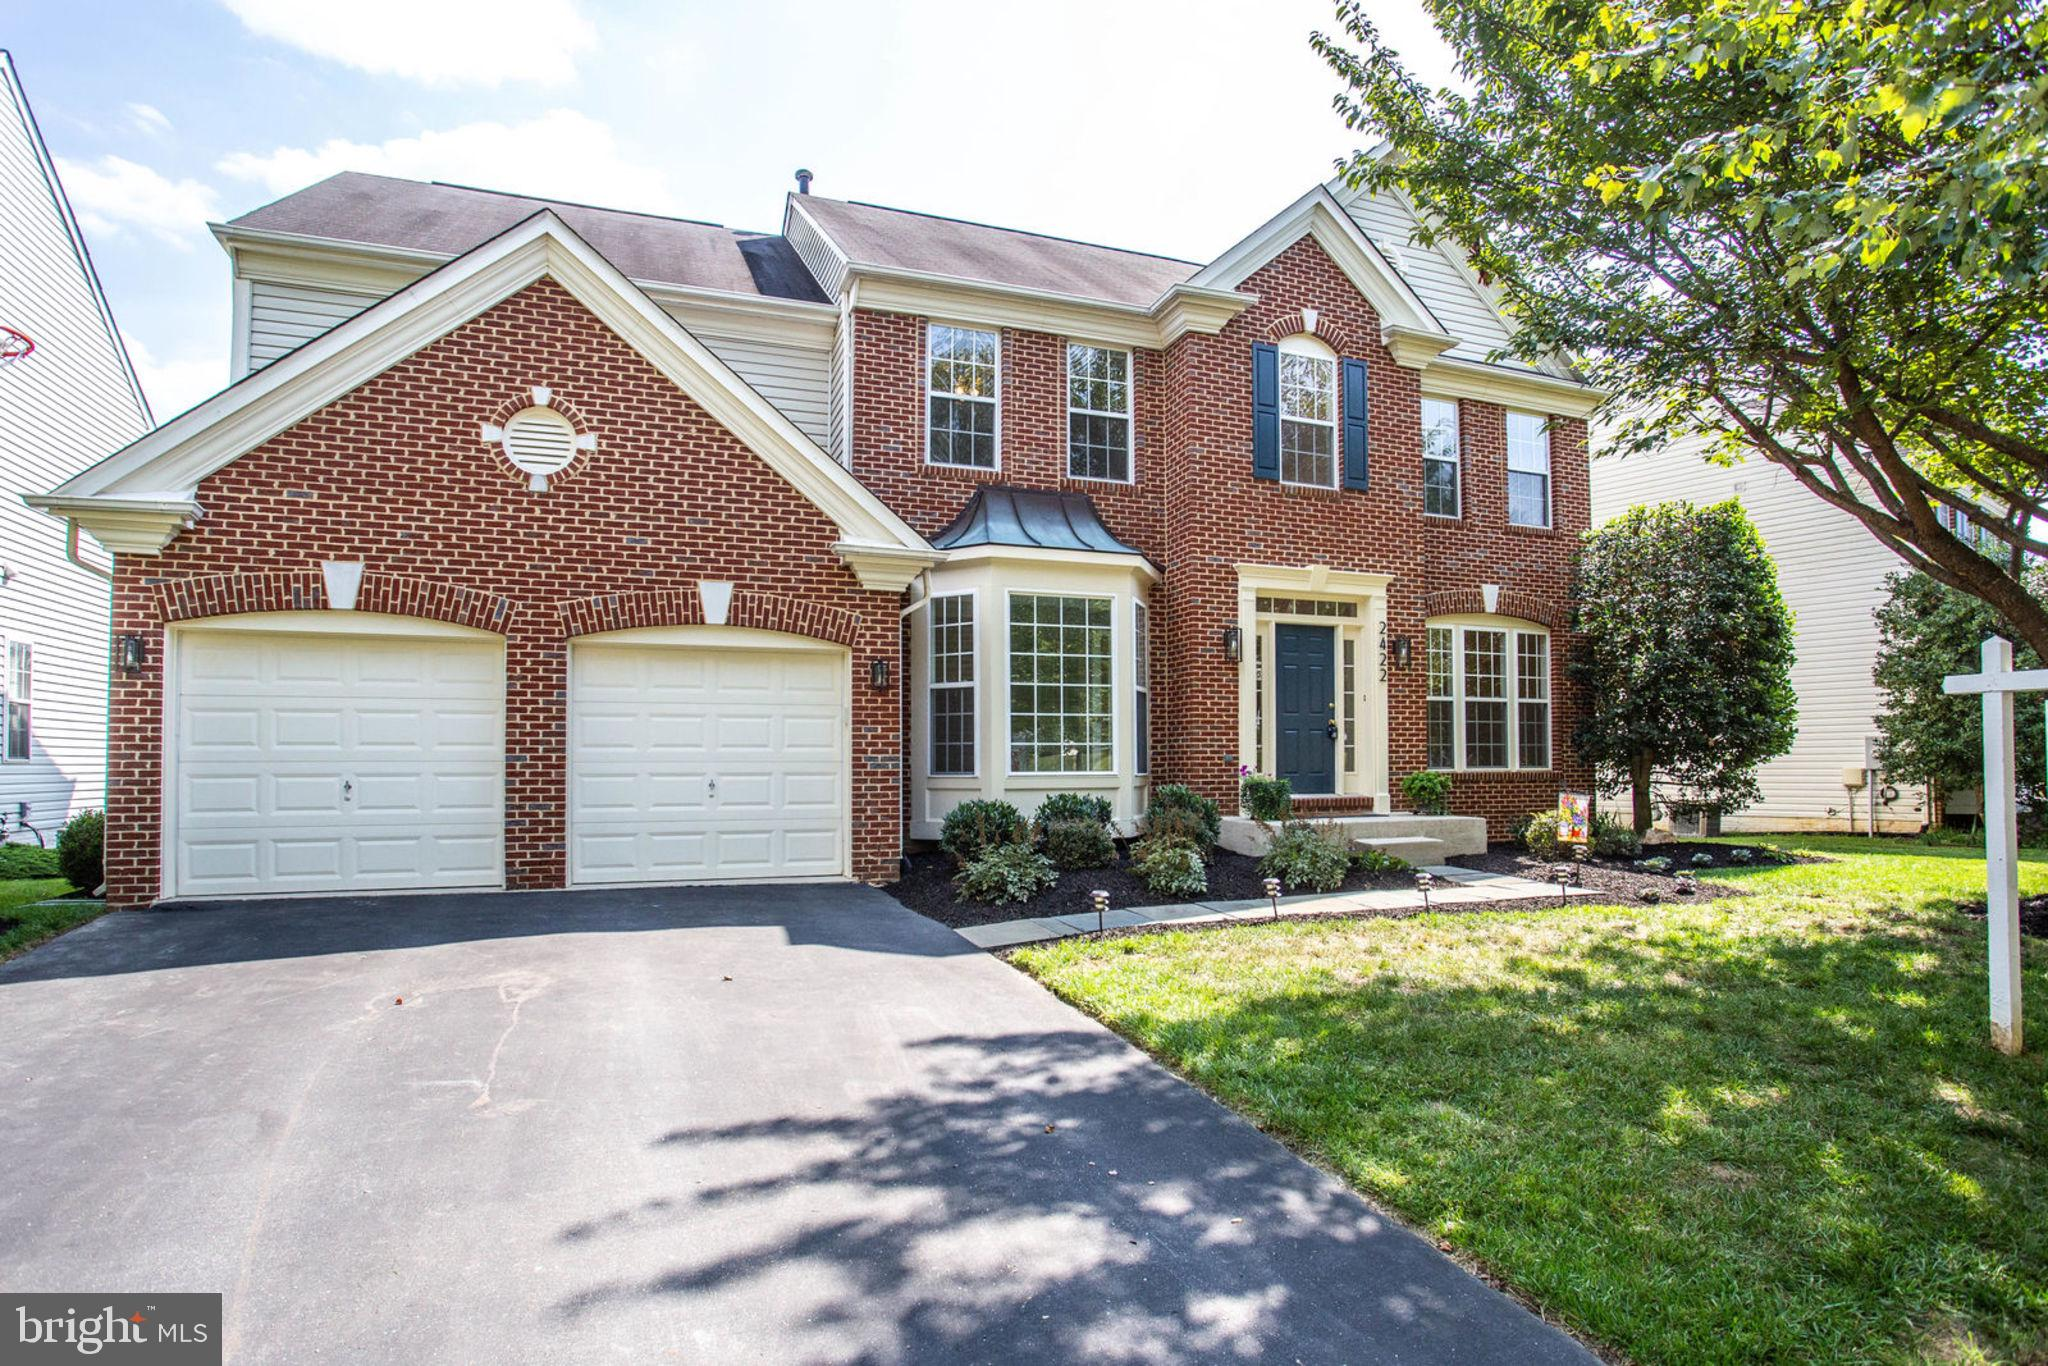 2422 ST GEORGE WAY, BROOKEVILLE, MD 20833